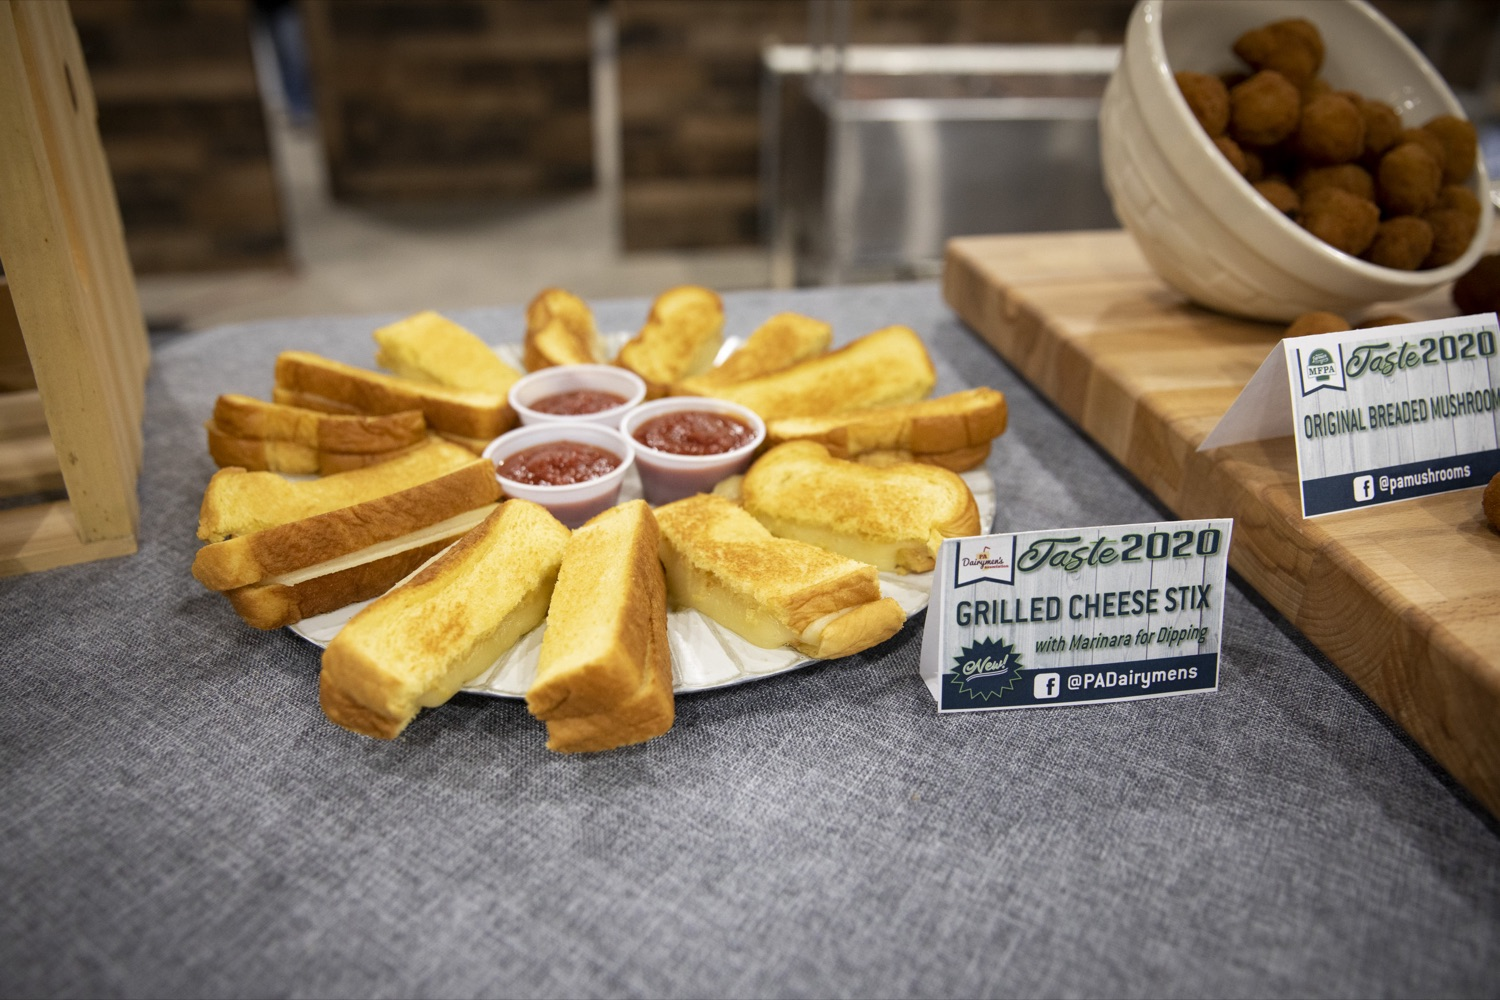 "<a href=""https://filesource.wostreaming.net/commonwealthofpa/photo/17658_FARM_SHOW_FIRST_TASTE_CZ_04.JPG"" target=""_blank"">⇣ Download Photo<br></a>The PA Dairymens Association introduces grilled cheese stix with marinara dipping sauce at the Pennsylvania Farm Show Food Court in Harrisburg on January 2, 2020."